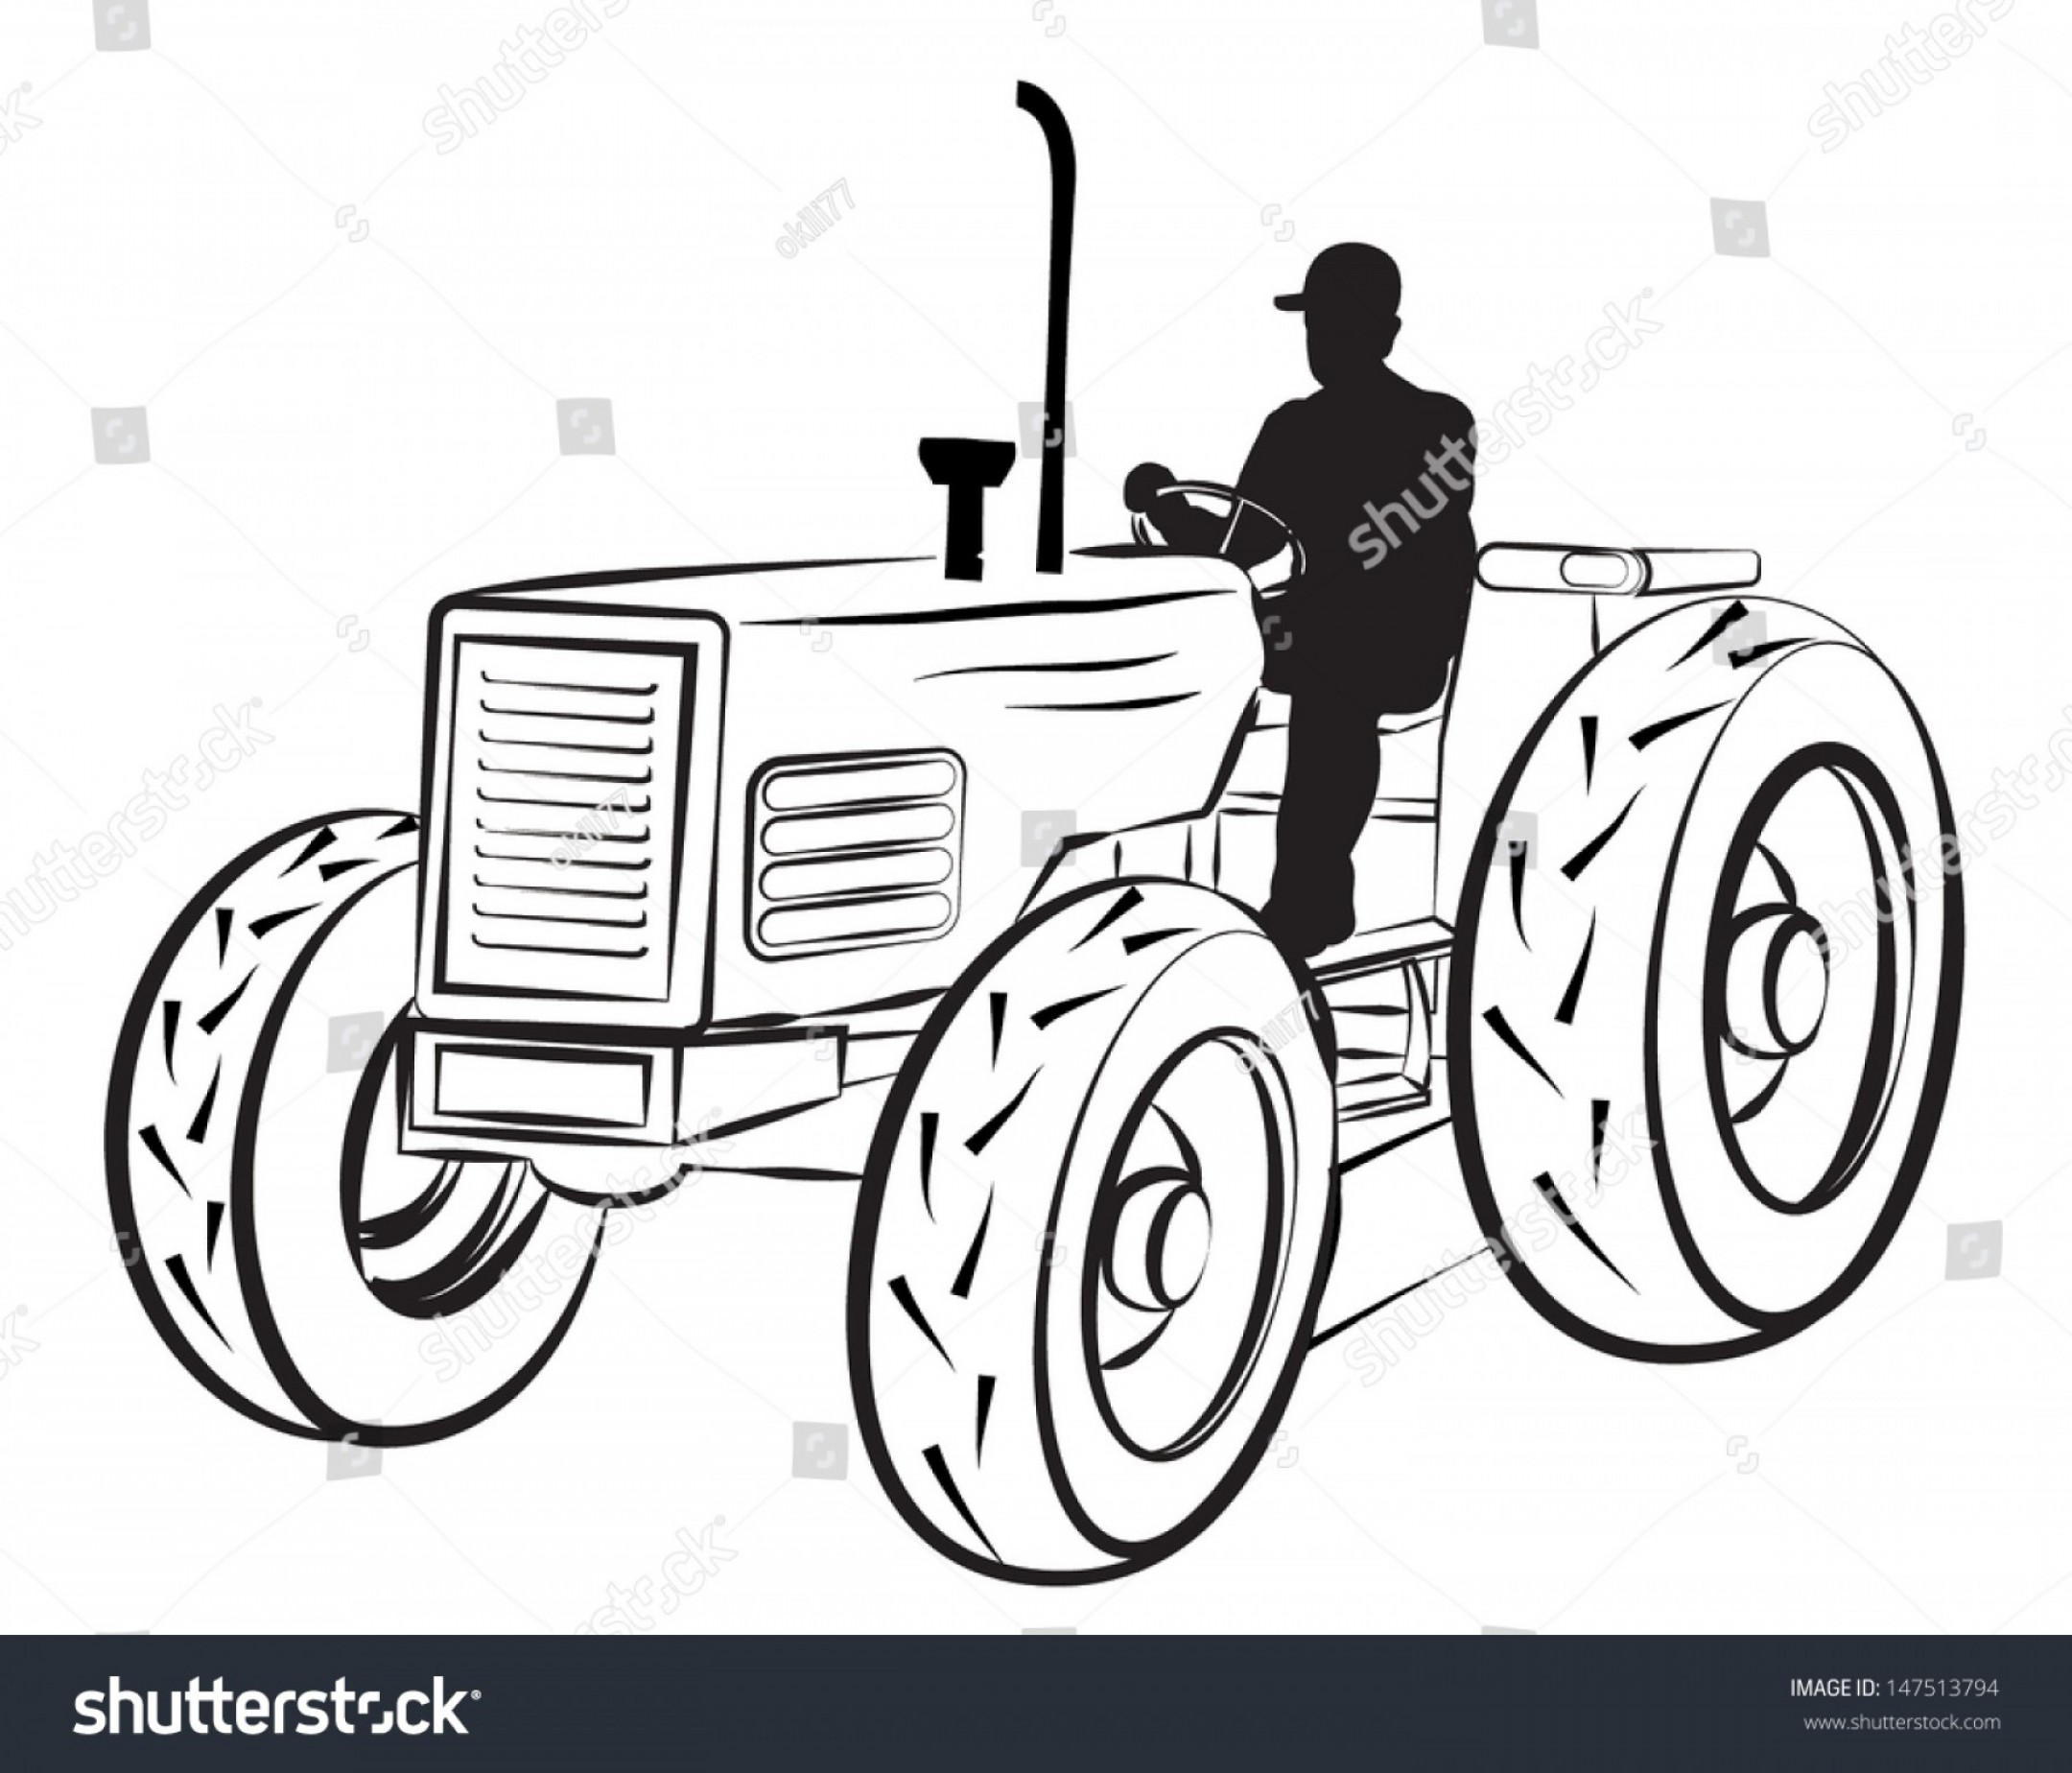 Free Tractor Vector: Sumptuous Tractor Outline Vector Illustration Of A Silhouette On White Image Drawing Clip Art Embroidery Design Printable Free